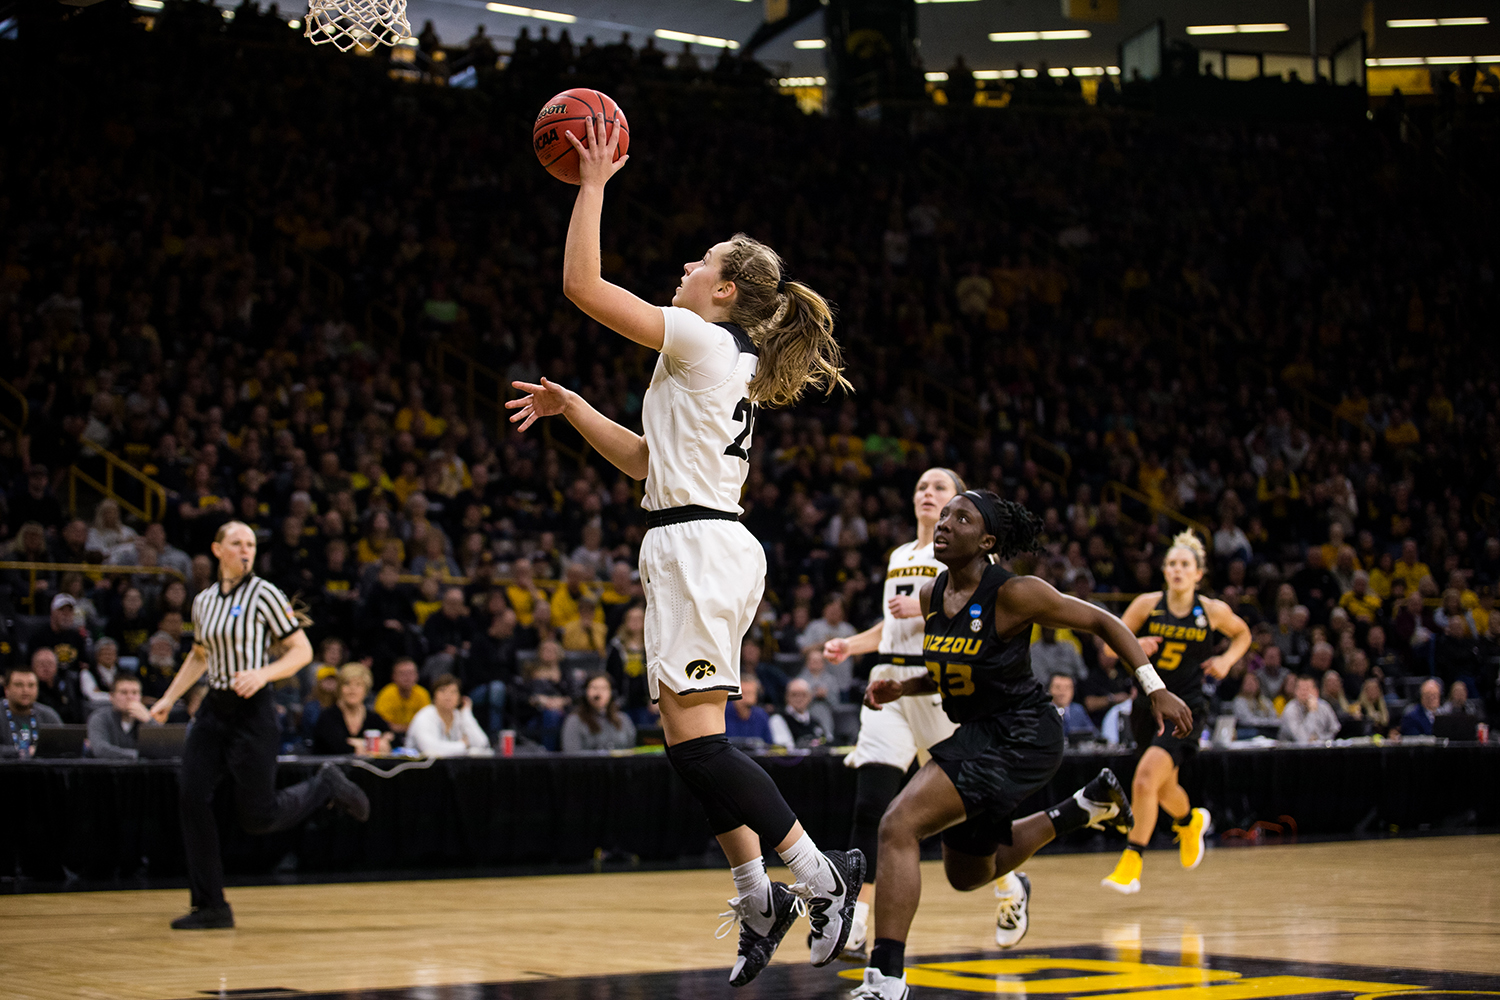 Iowa+guard+Kathleen+Doyle+%2822%29+takes+a+shot+during+the+Iowa%2FMissouri+NCAA+Tournament+second+round+women%E2%80%99s+basketball+game+in+Carver-Hawkeye+Arena+in+Iowa+City%2C+Iowa+on+Sunday%2C+March+24%2C+2019.+The+Hawkeyes+defeated+the+Tigers+68-52.